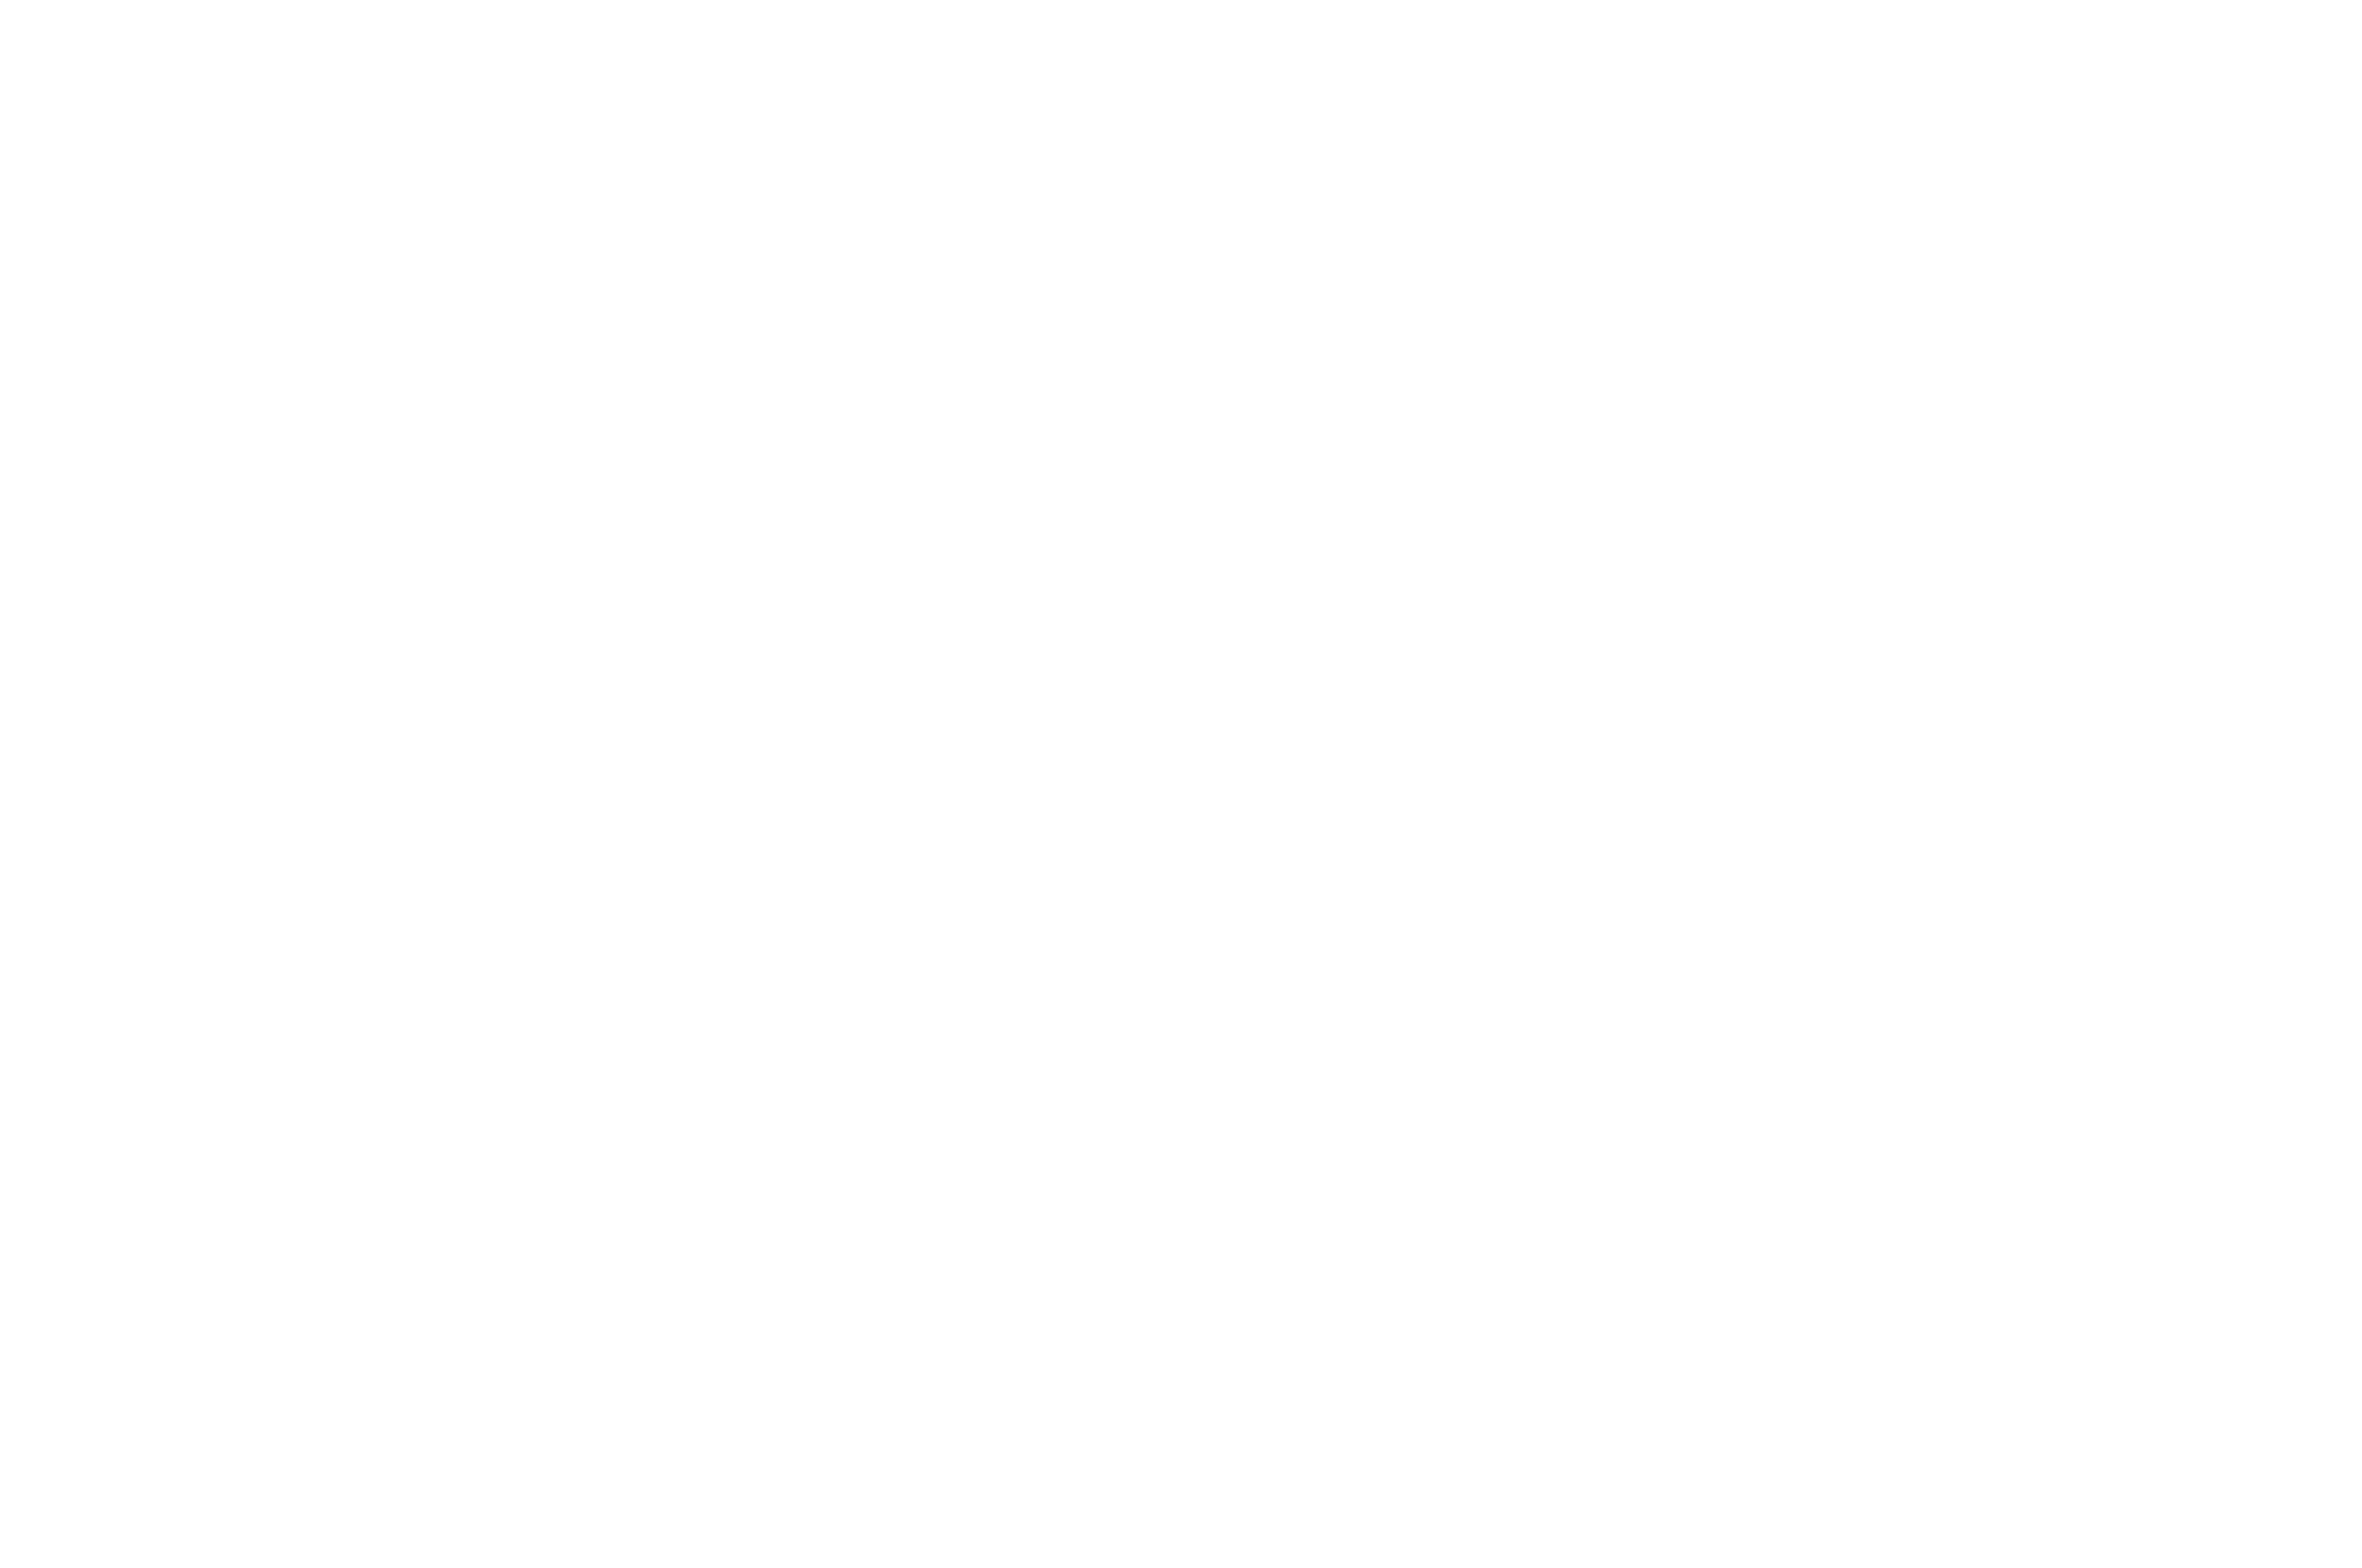 OFFICIALSELECTION-NATIONALBLACKFILMFESTIVAL-2019 (1).png